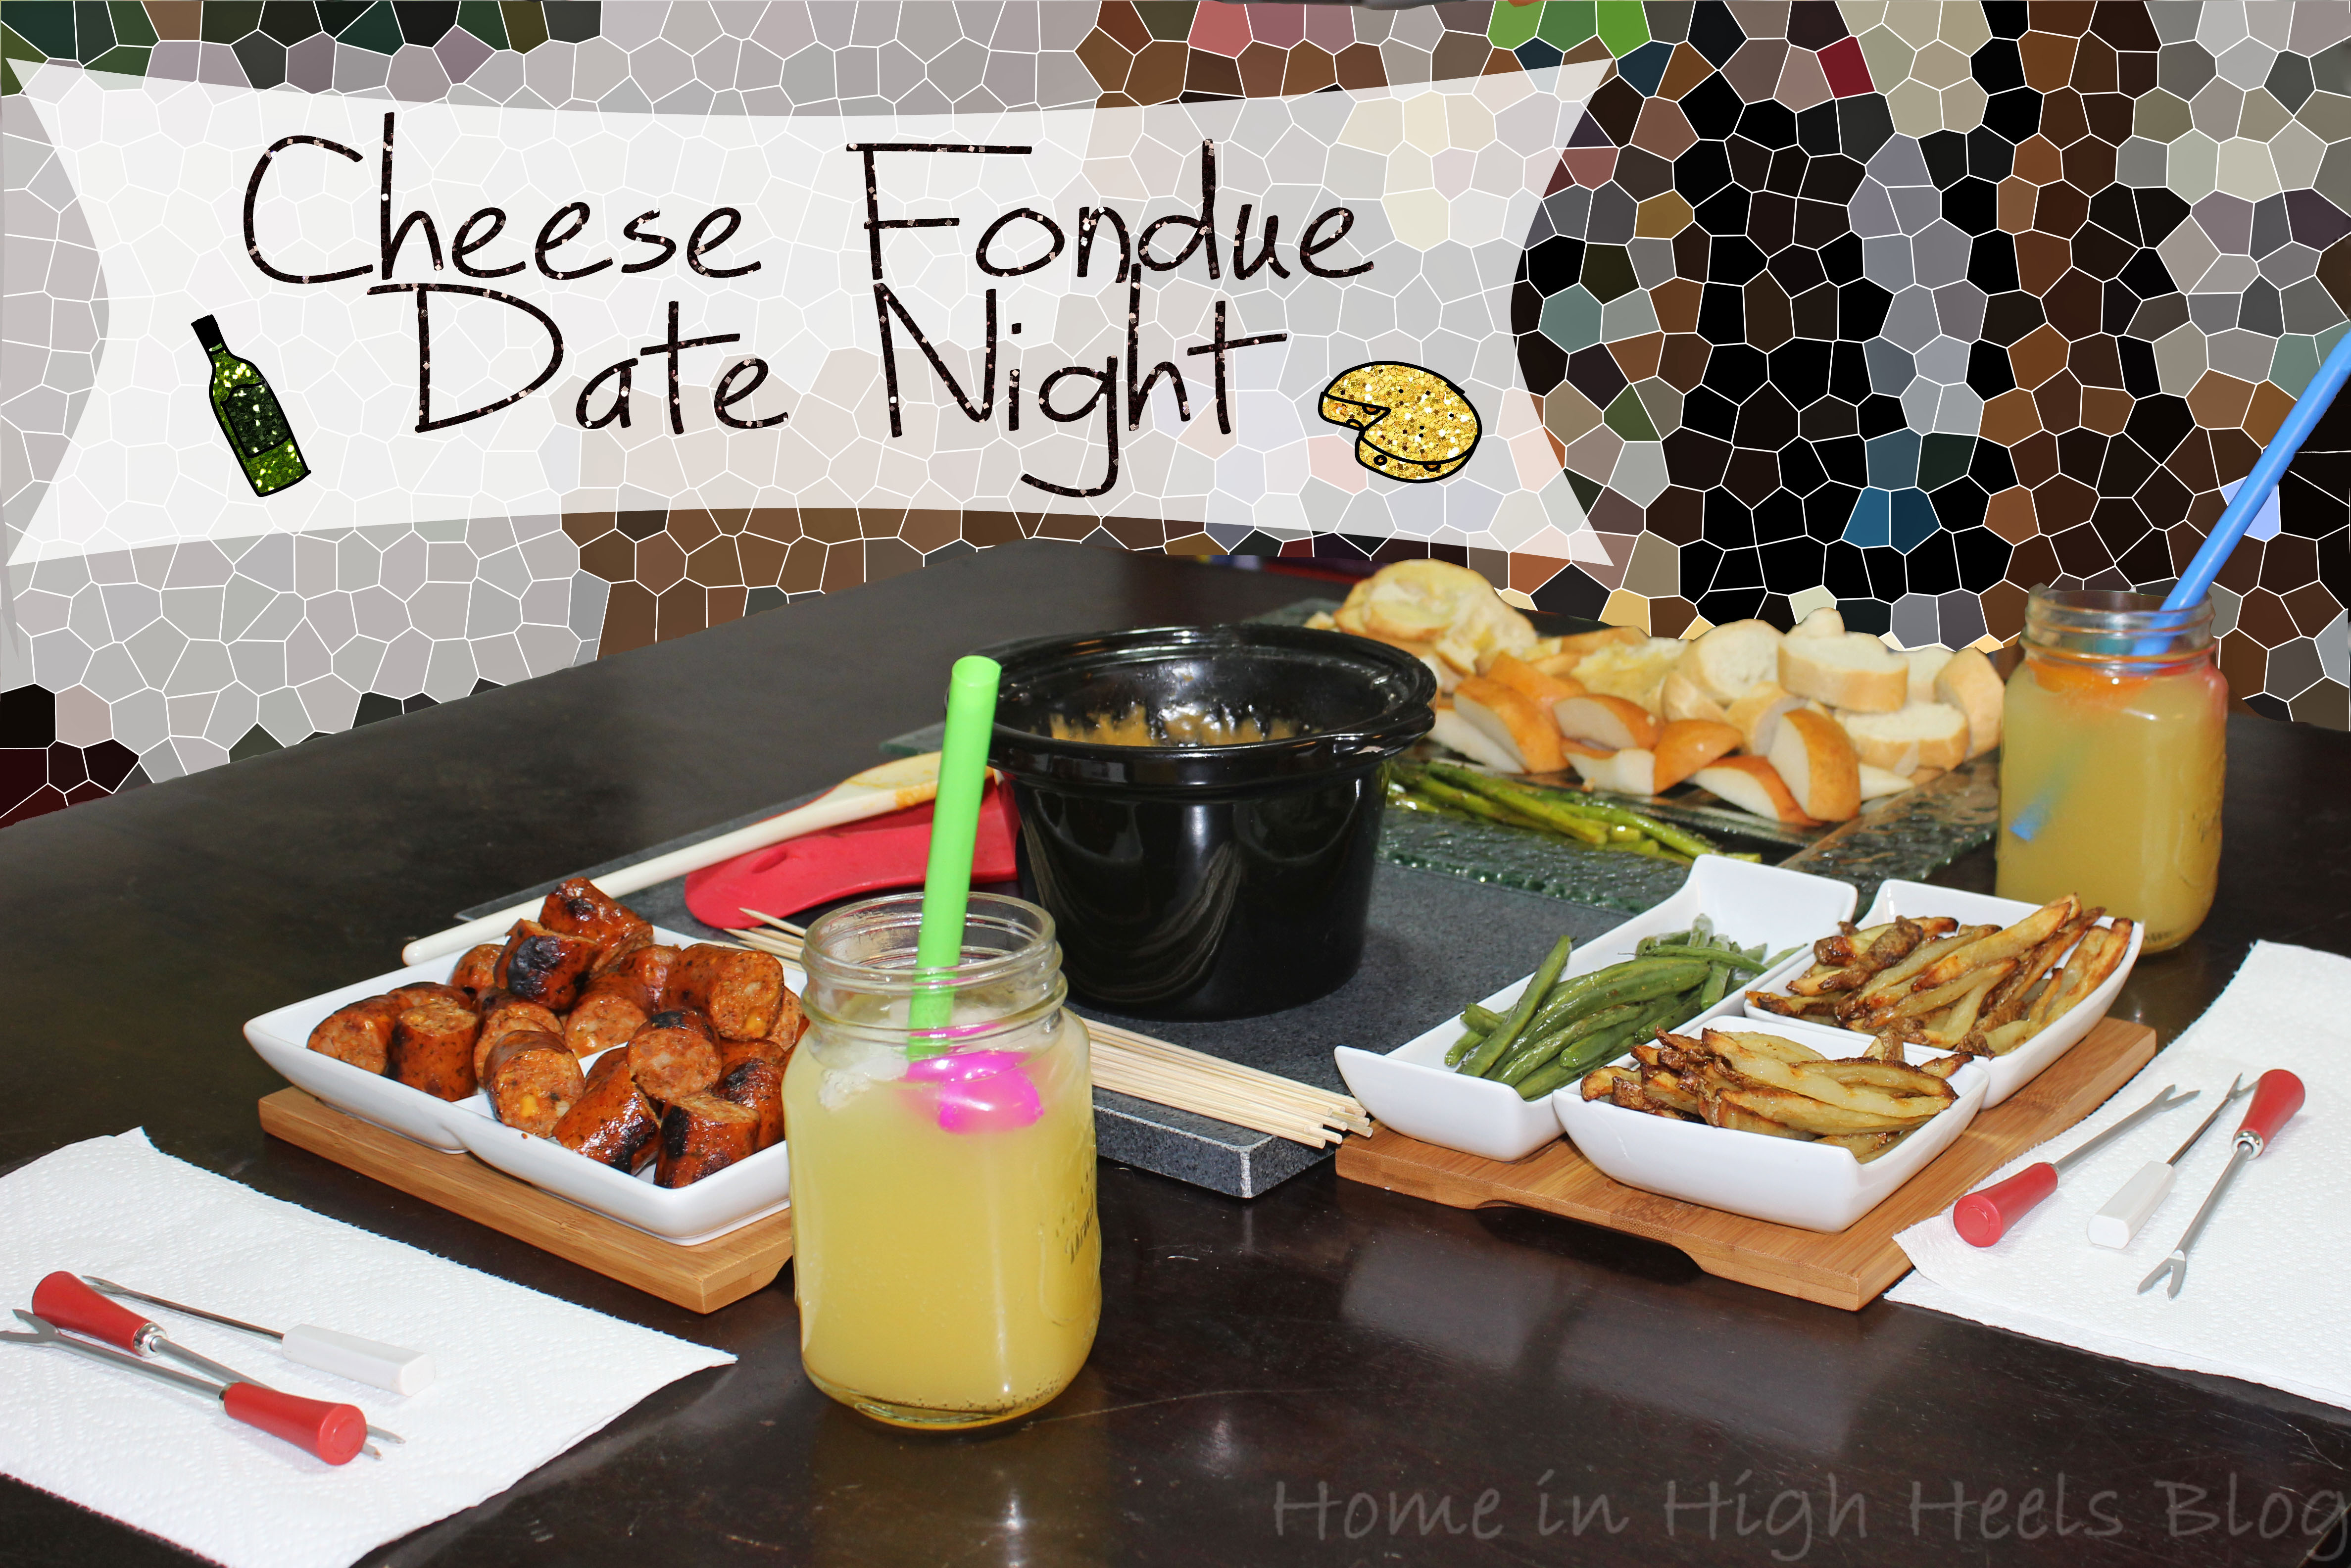 fondue date night beer cheese fondue crockpot style home in high